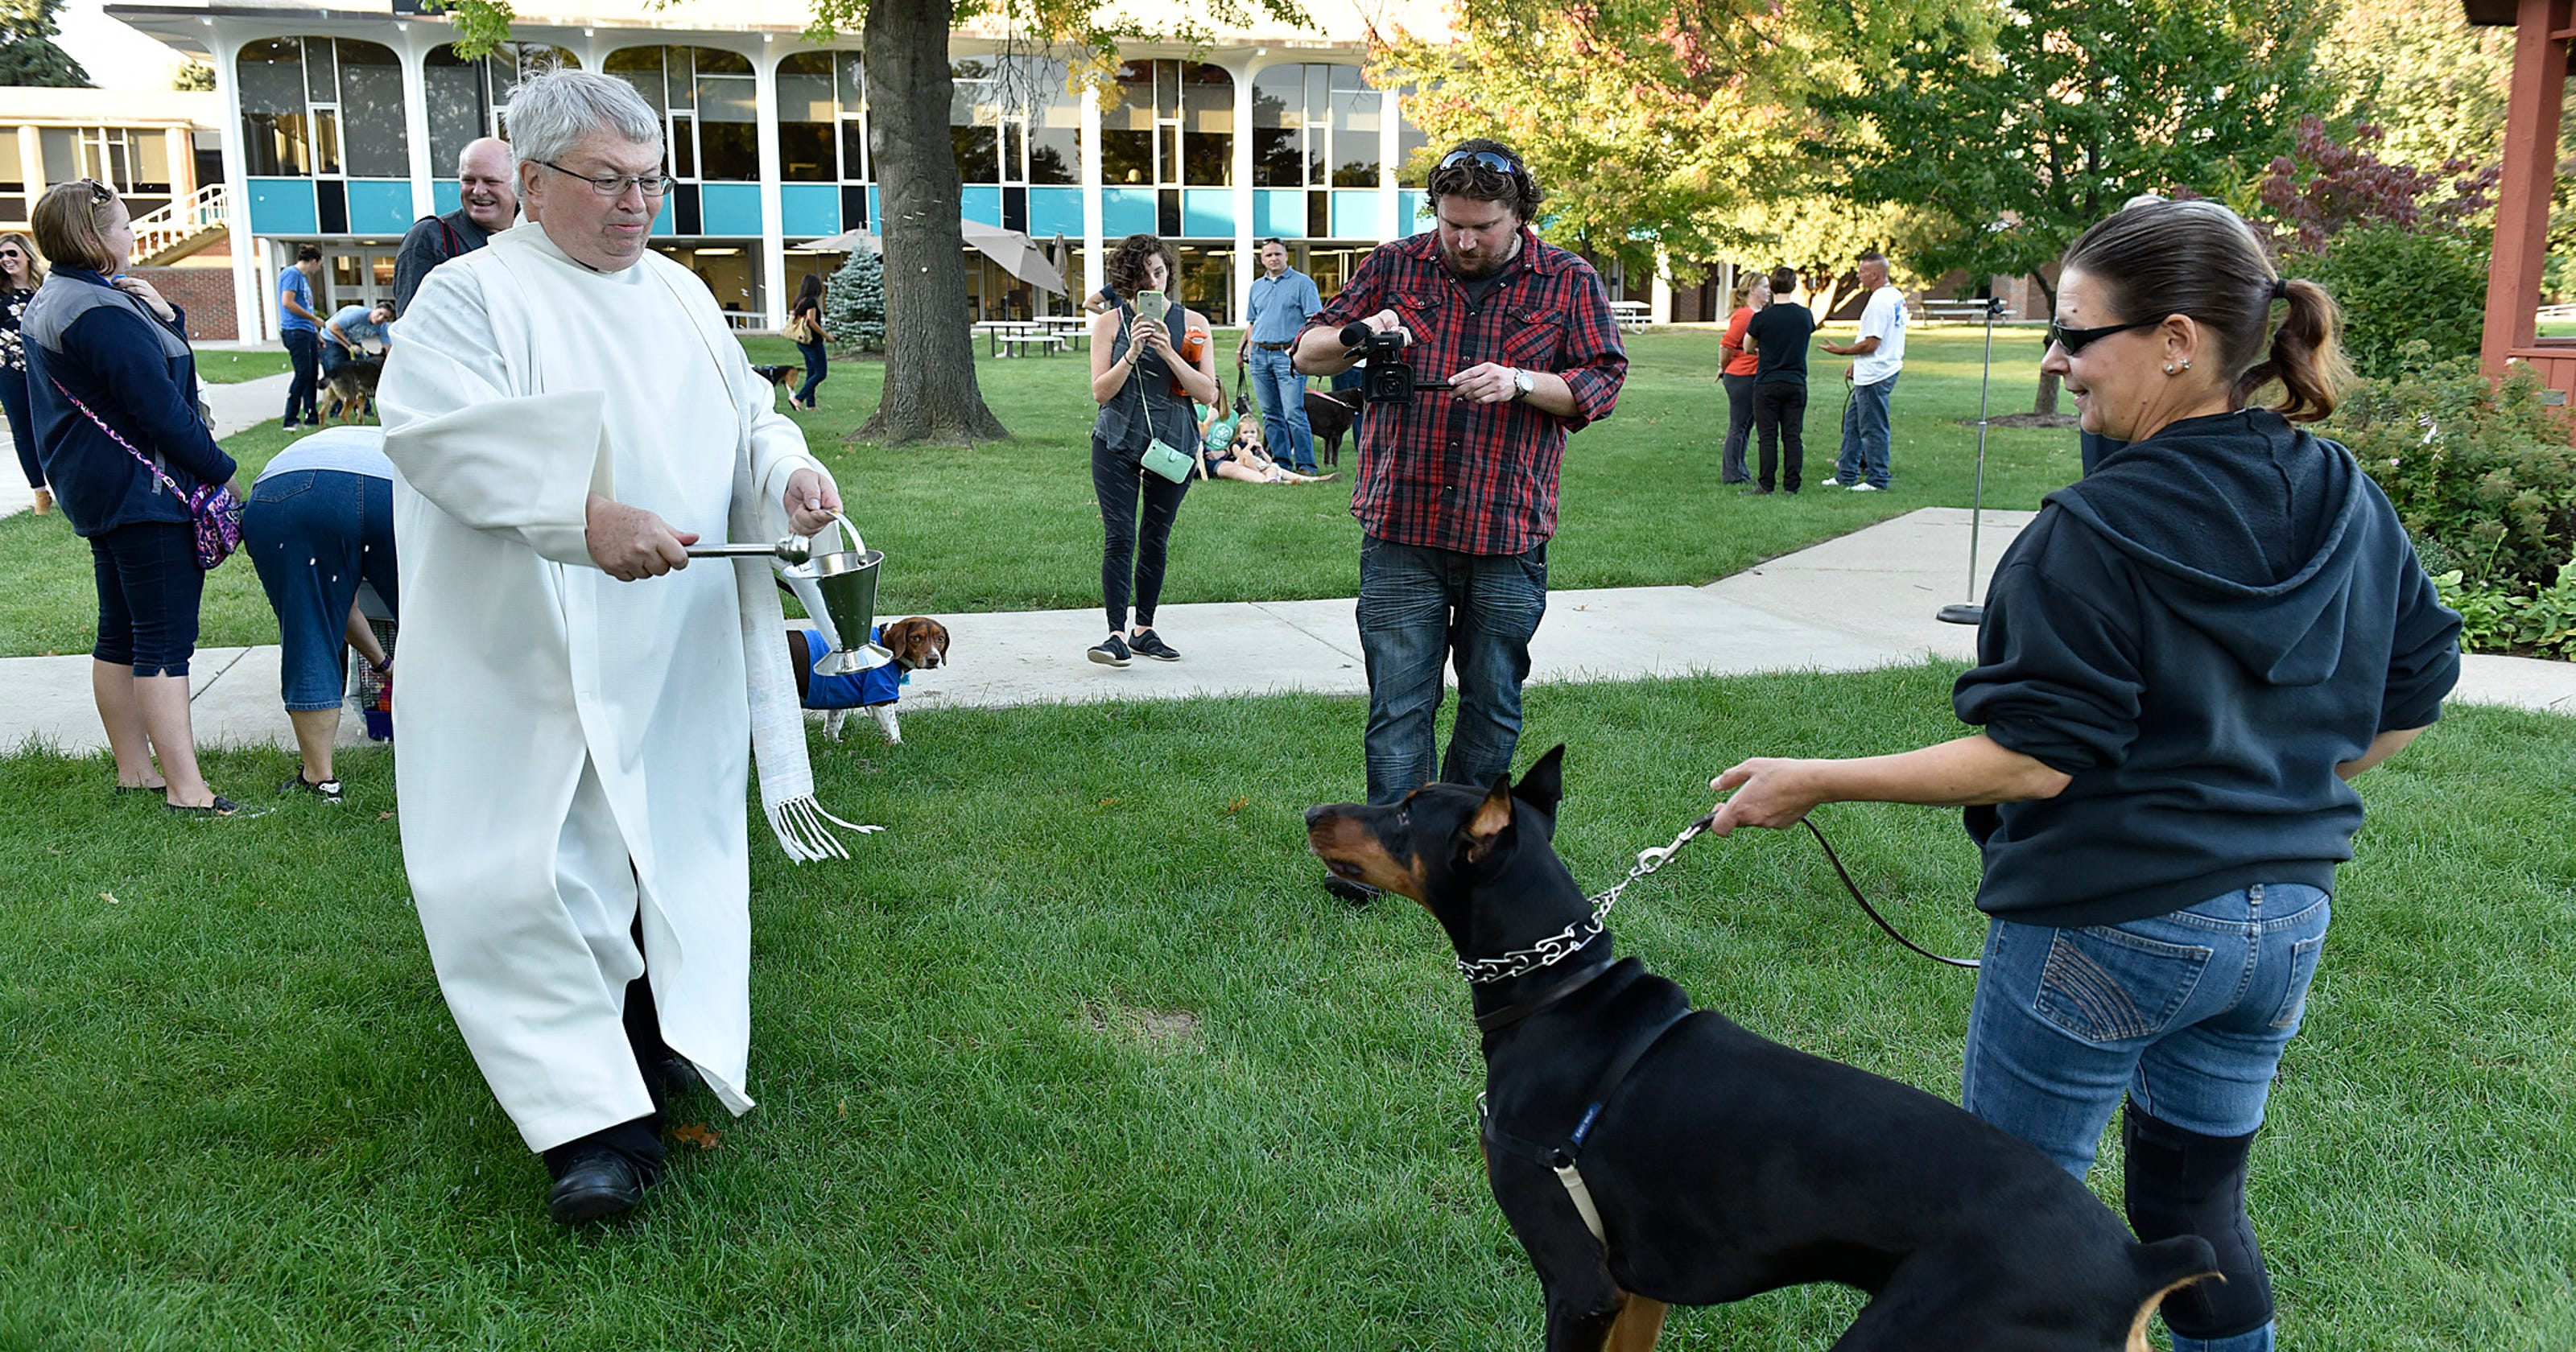 dbbdd7f9 Dogs, cats, even rats, blessed at annual Madonna event